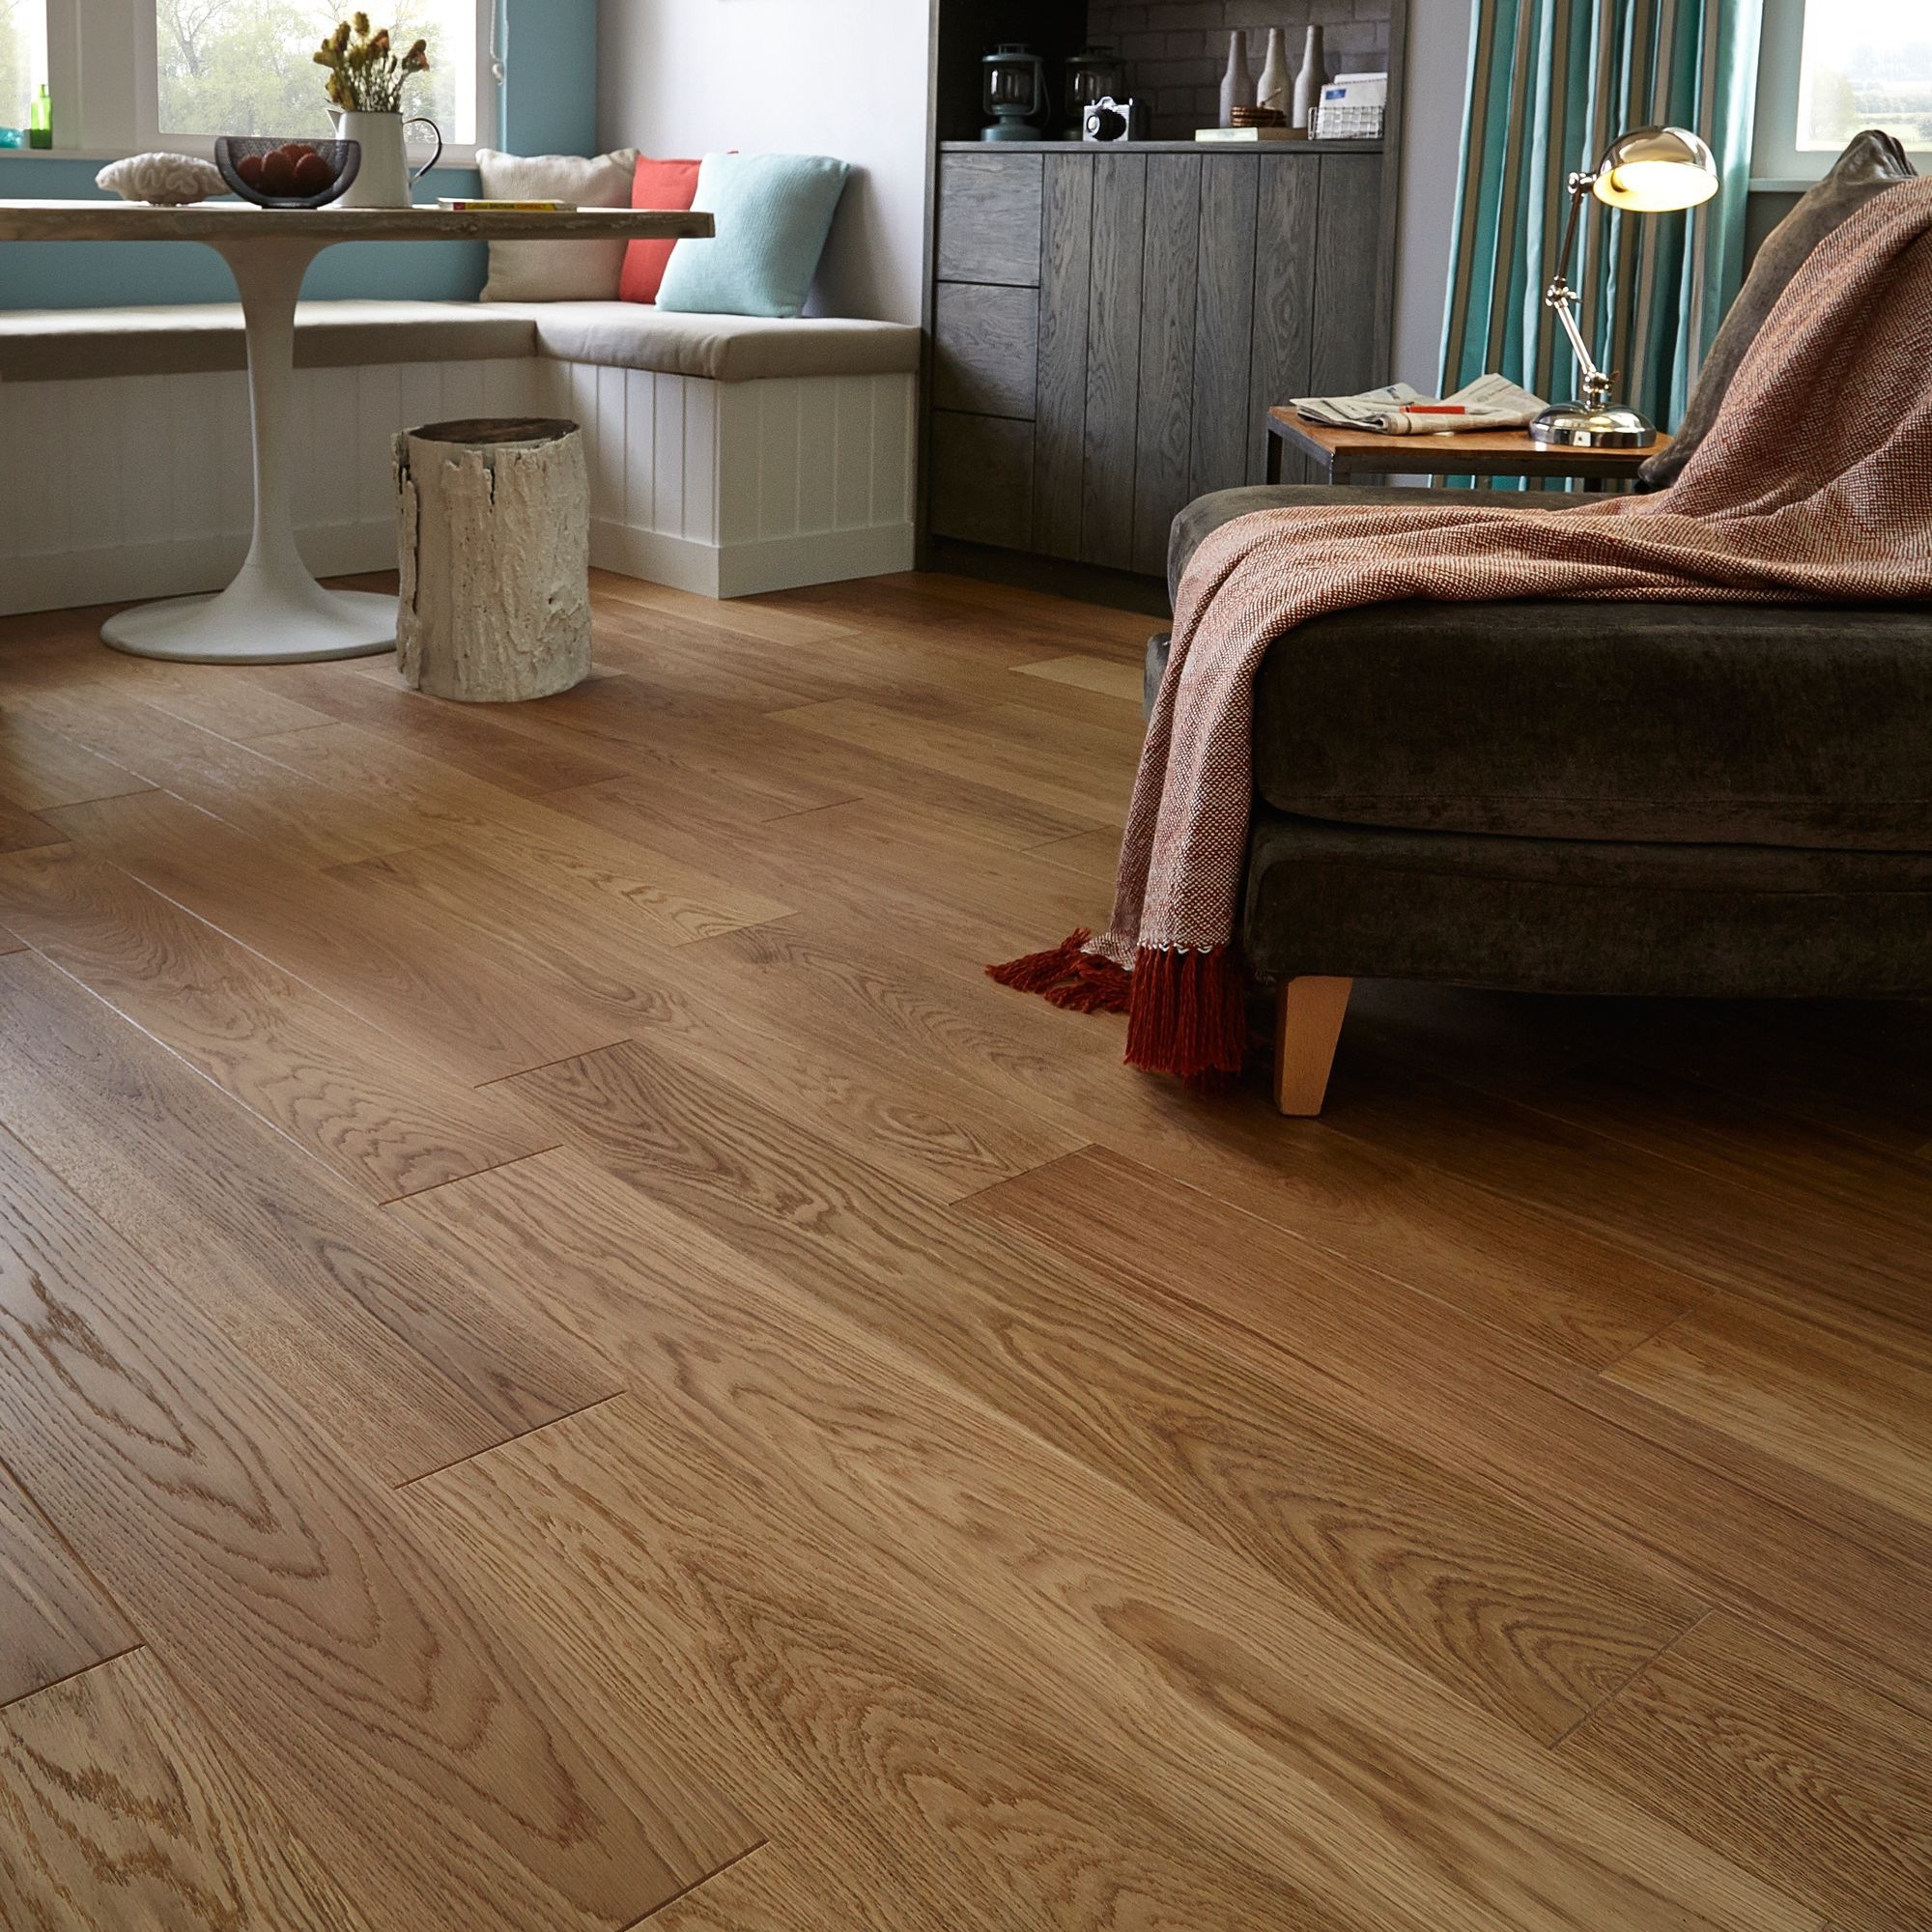 Quick-Step Cadenza Natural Oak effect Wood Top layer